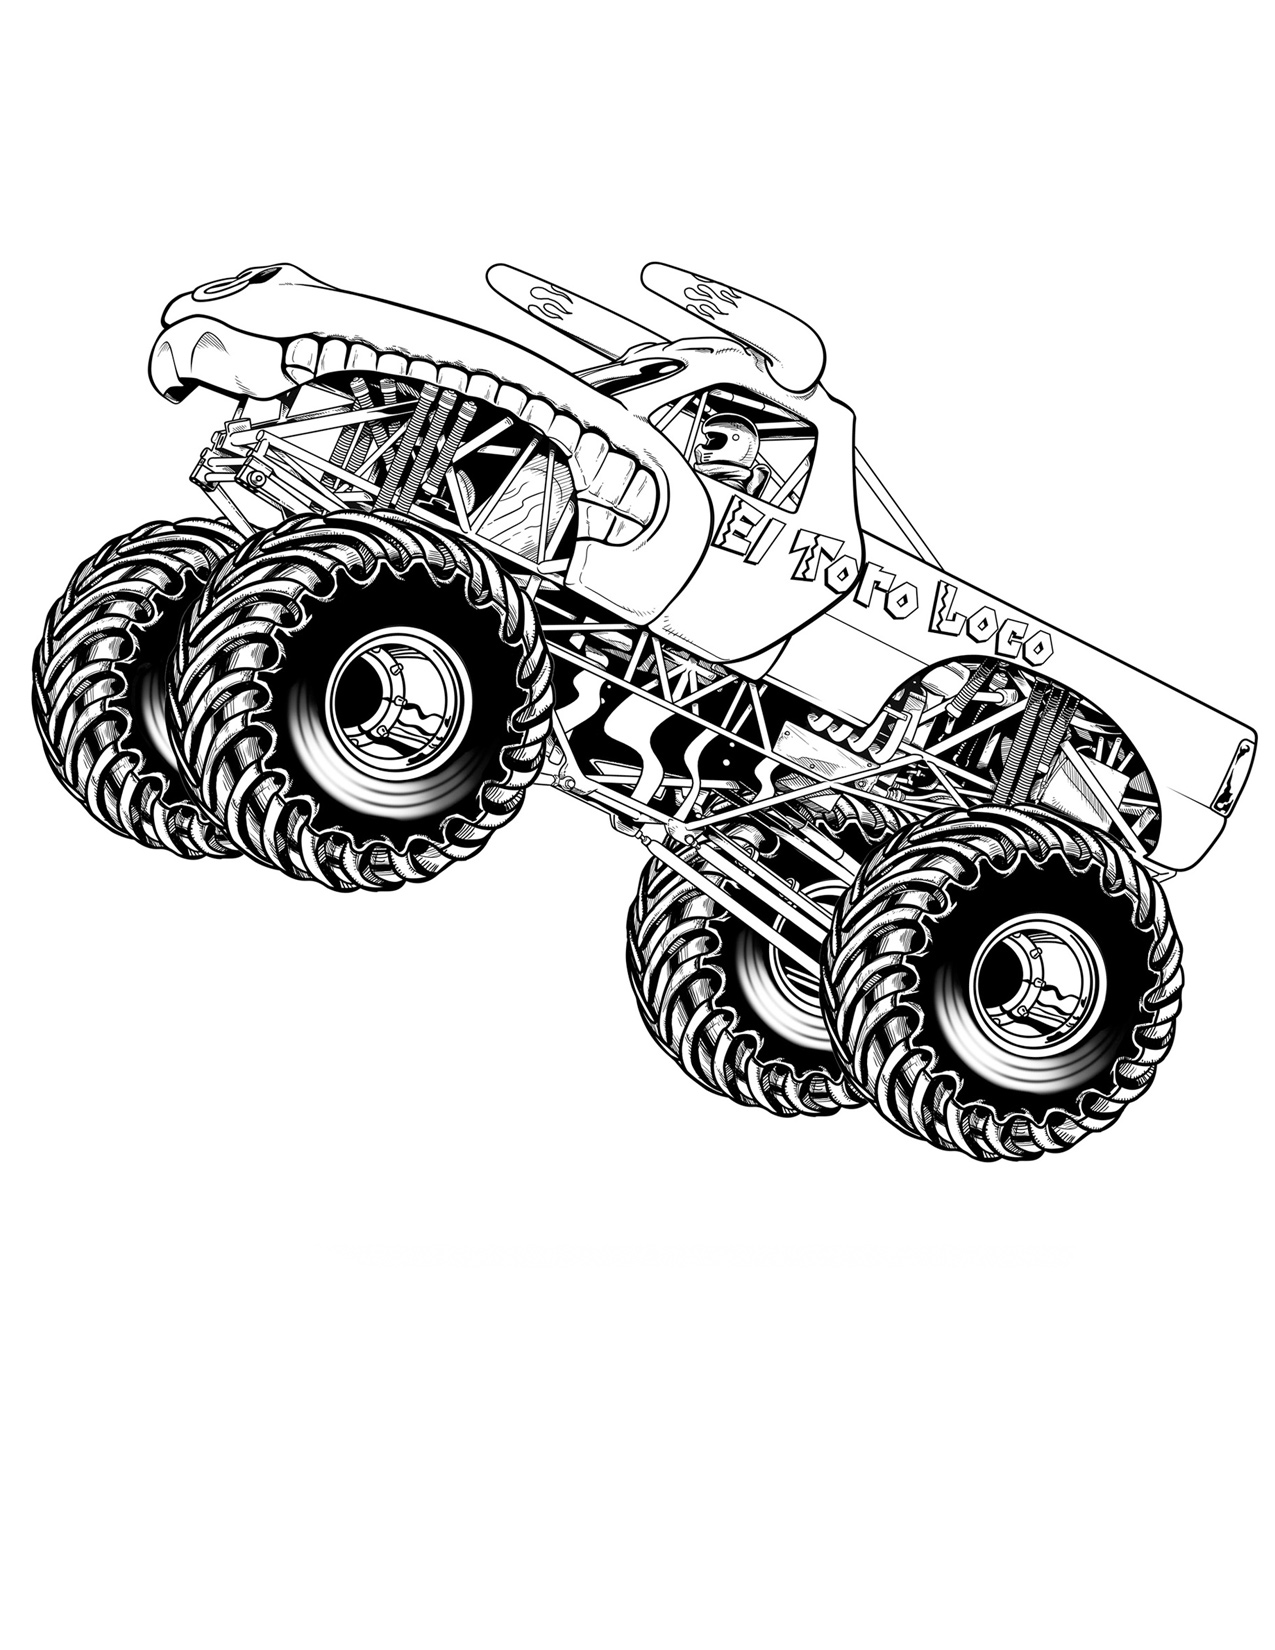 Adult Top Monster Truck Coloring Pages To Print Images cute free printable monster truck coloring pages for kids page gallery images